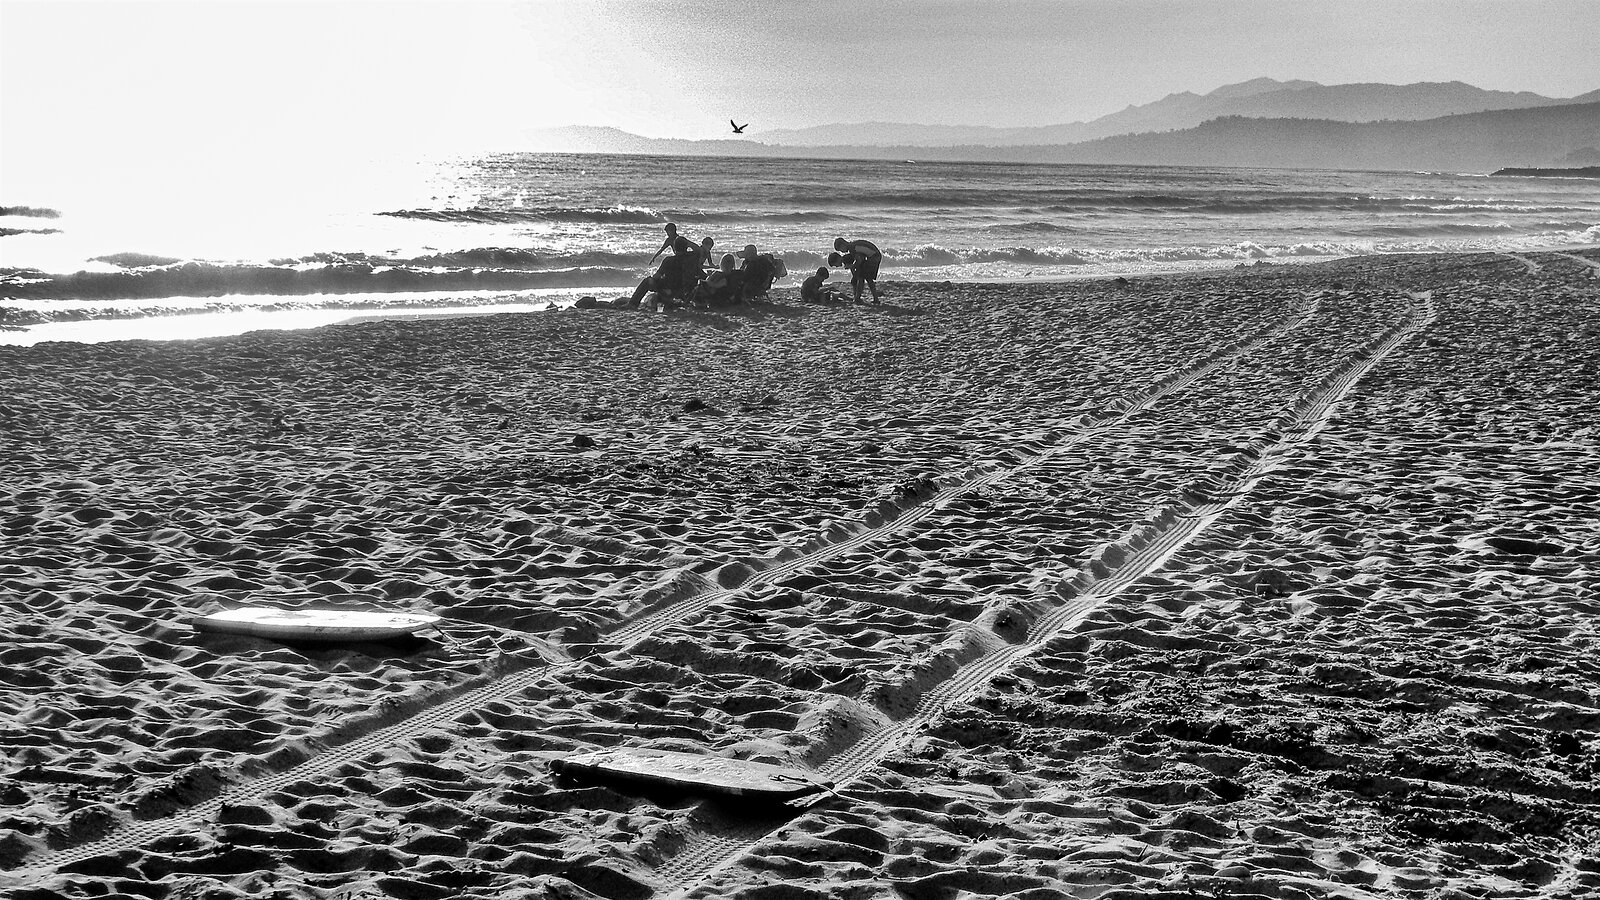 beach_tracks_Coolpix9700_June20_smaller.jpg